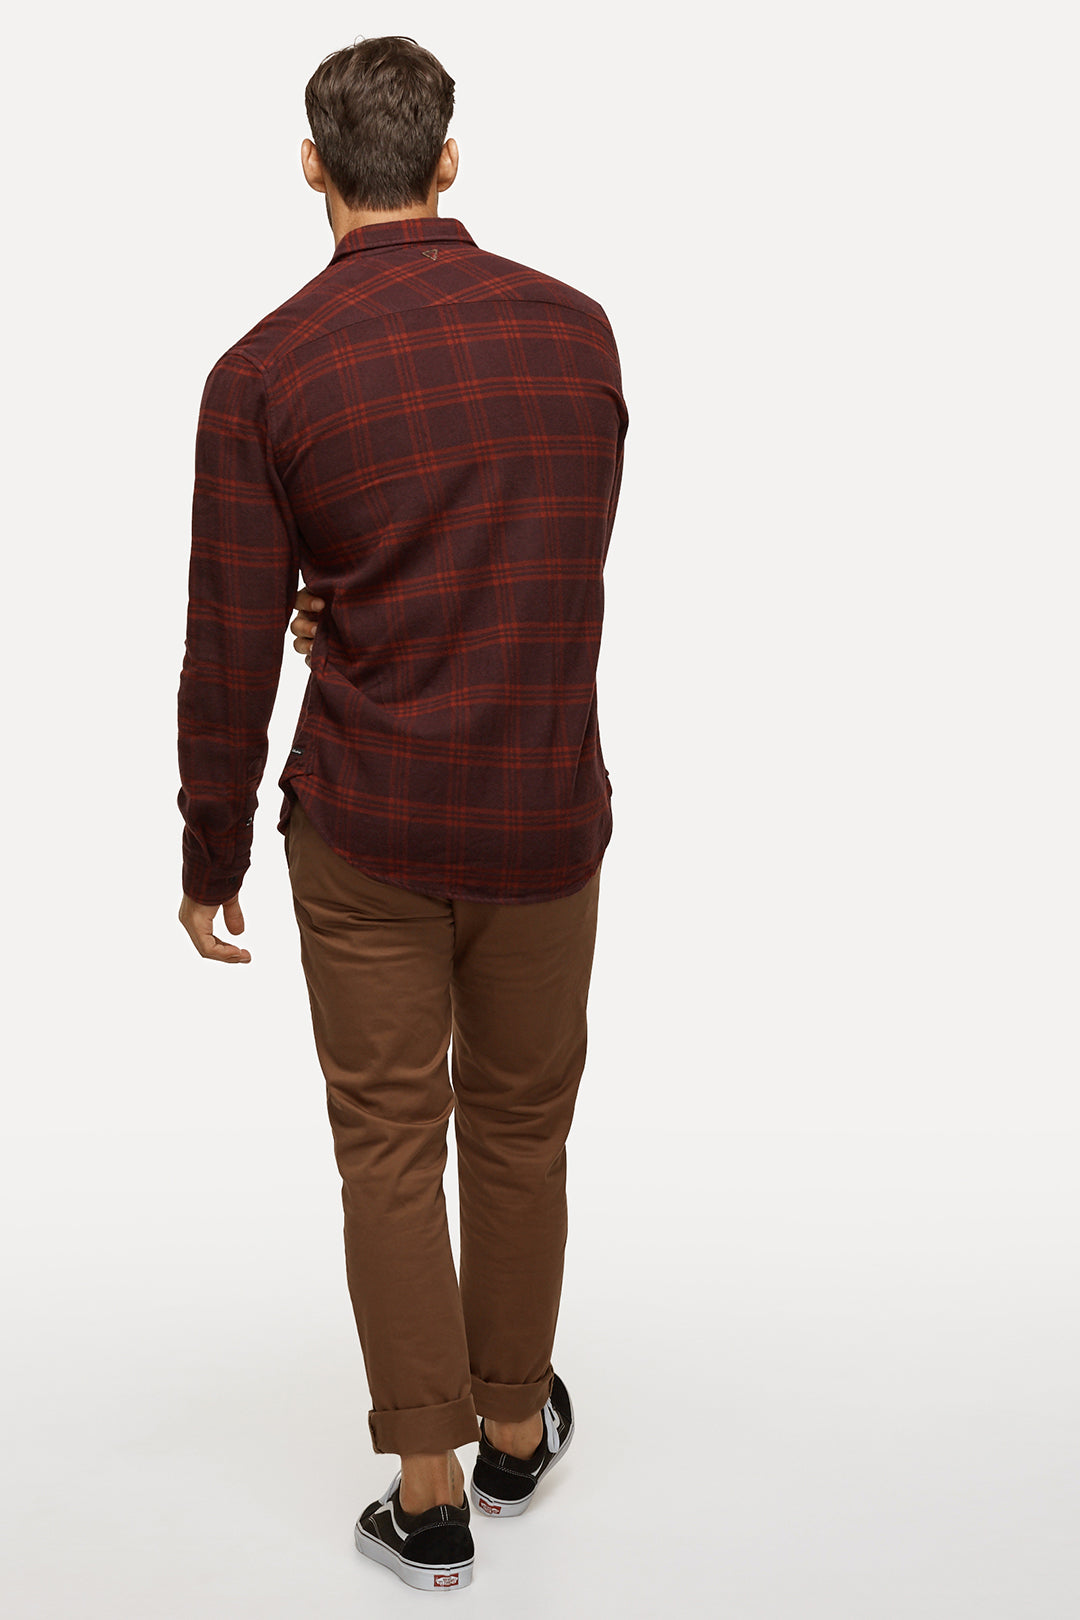 The Coyote L/S Shirt - Burgundy